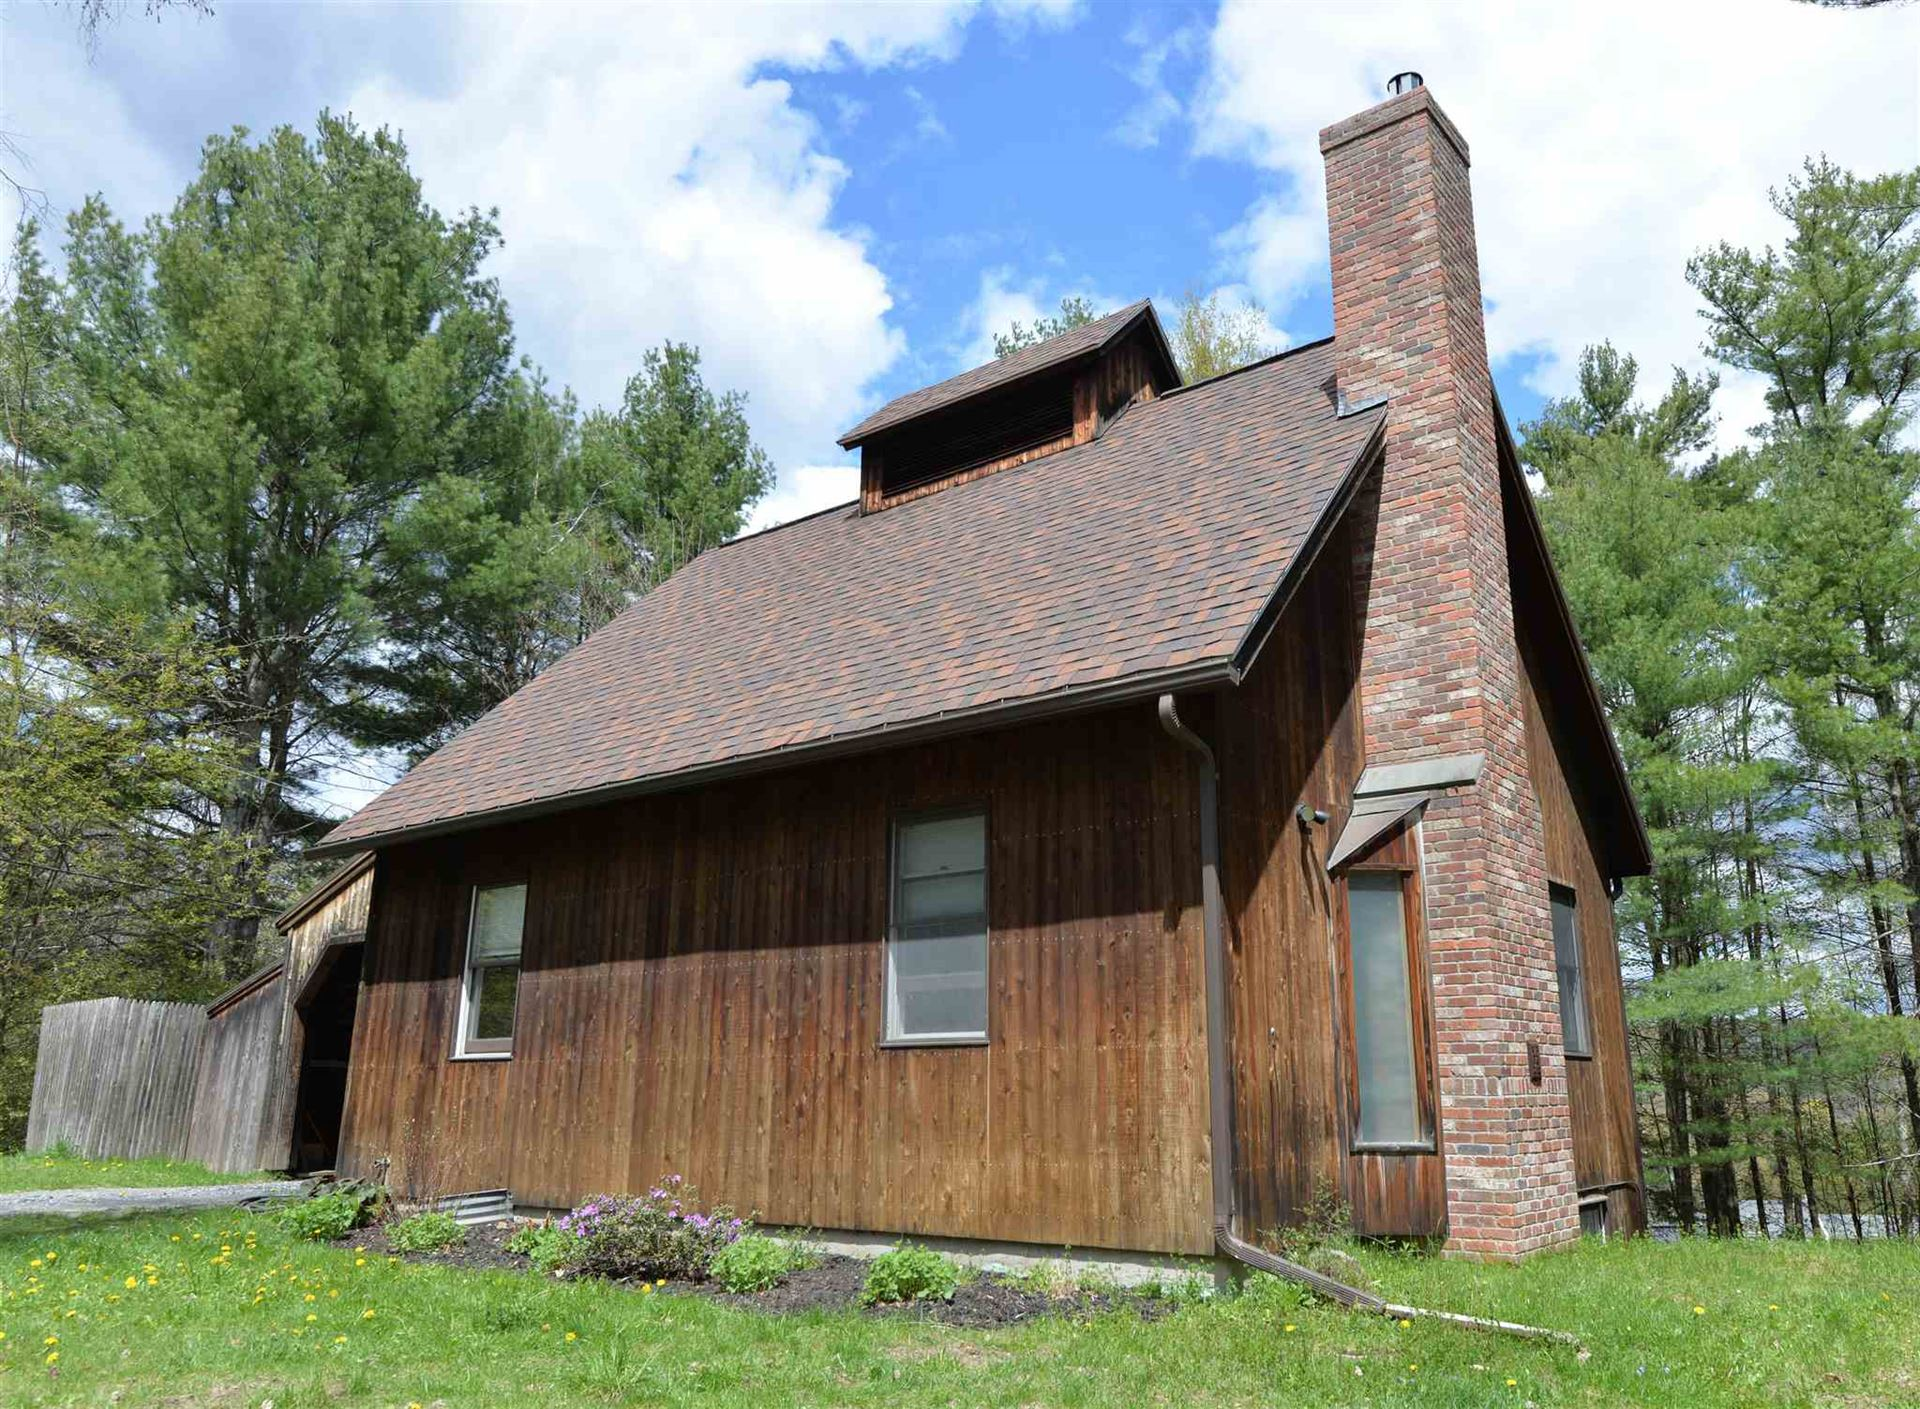 Photo of 144 Birch Hill Road, Stowe, VT 05672 (MLS # 4860006)